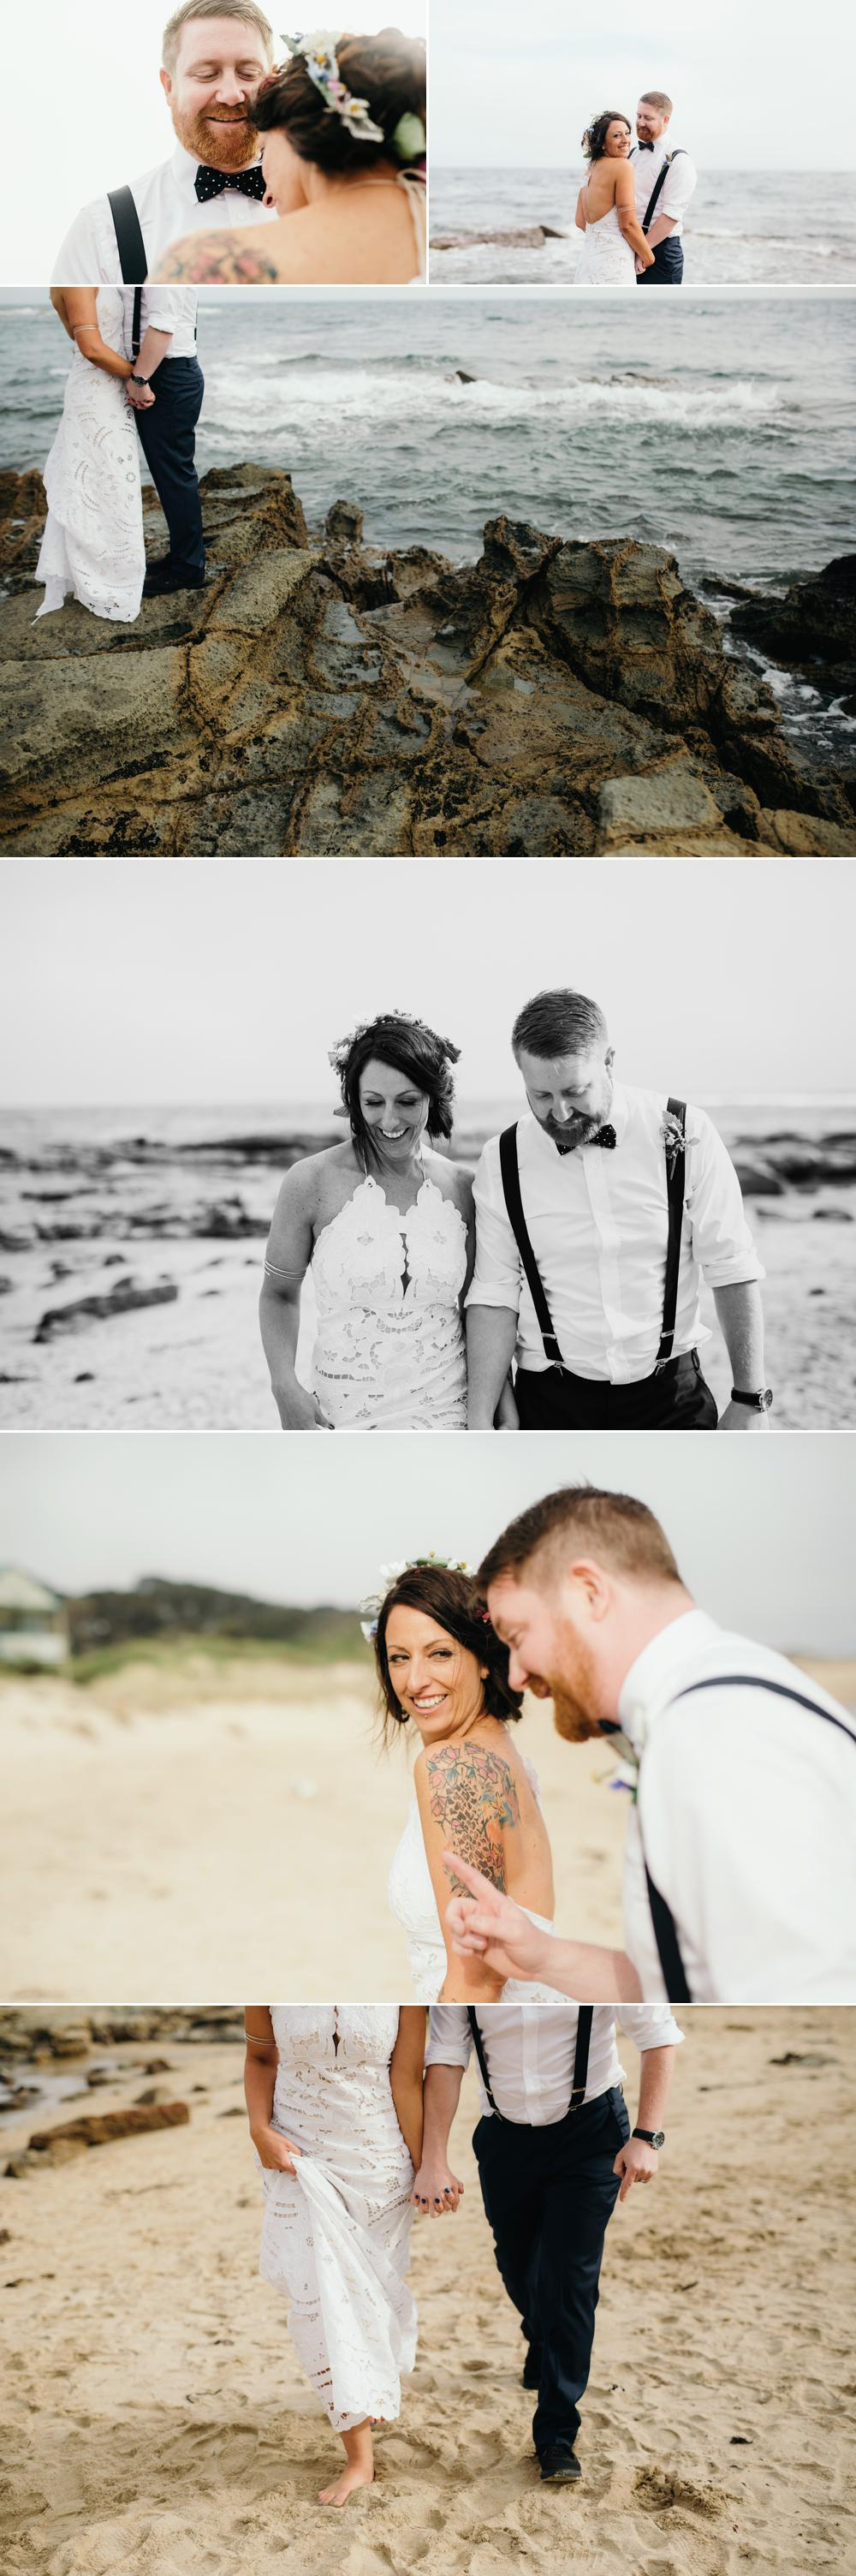 Serrin and Dave married 21